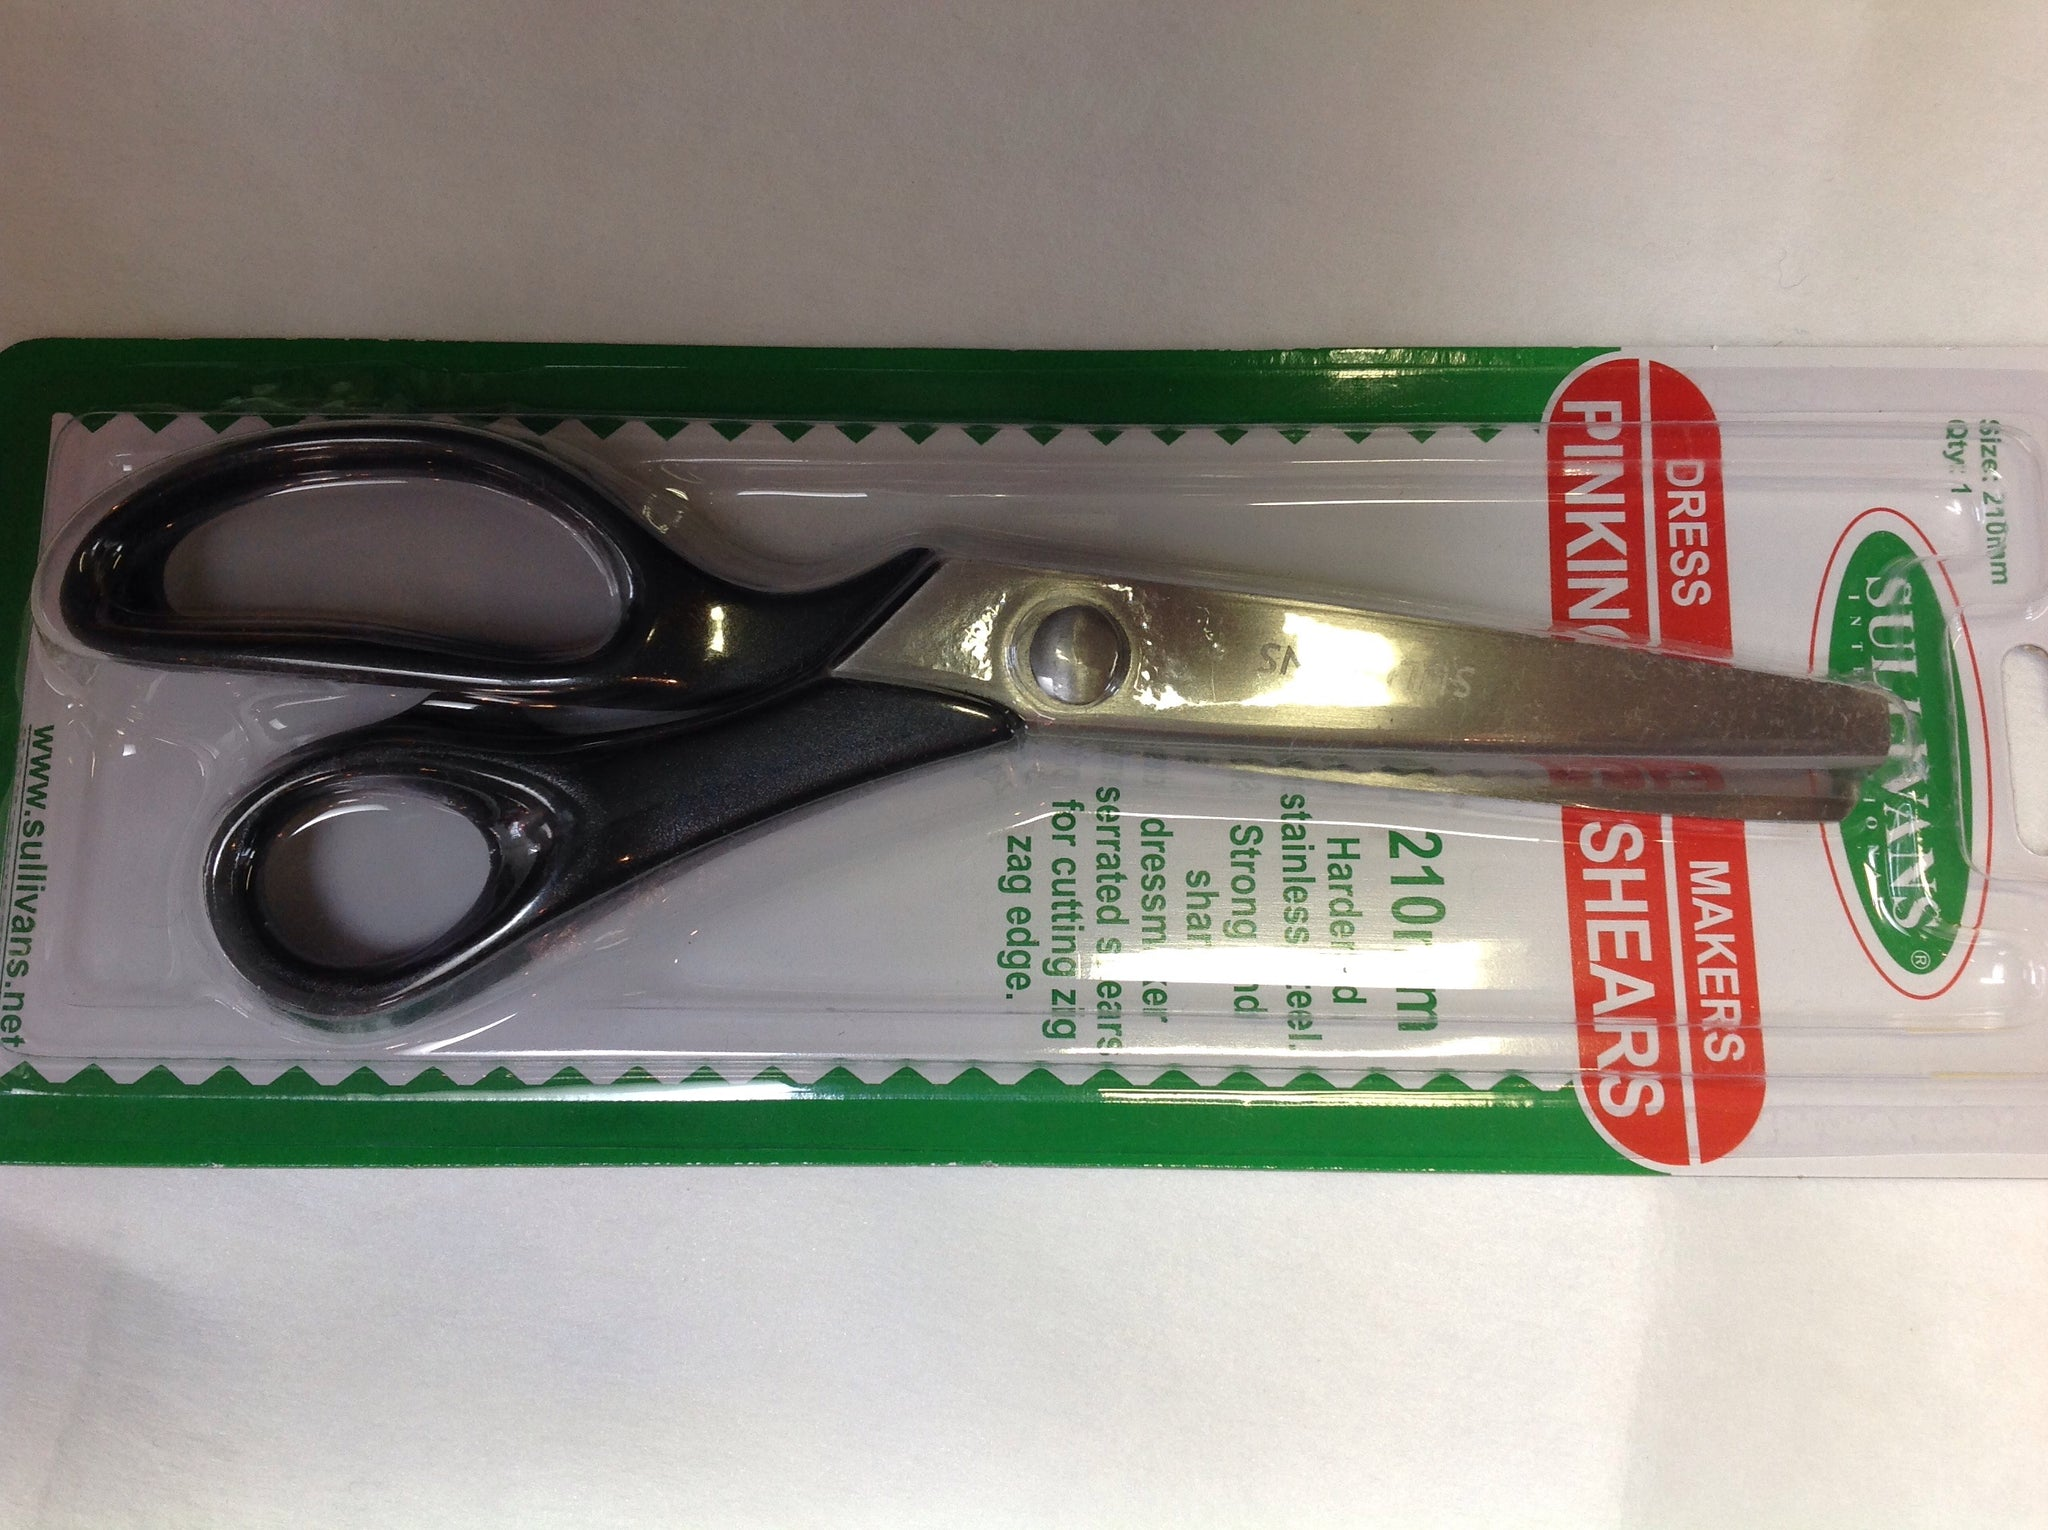 Sullivans - Dress Makers Pinking Shears